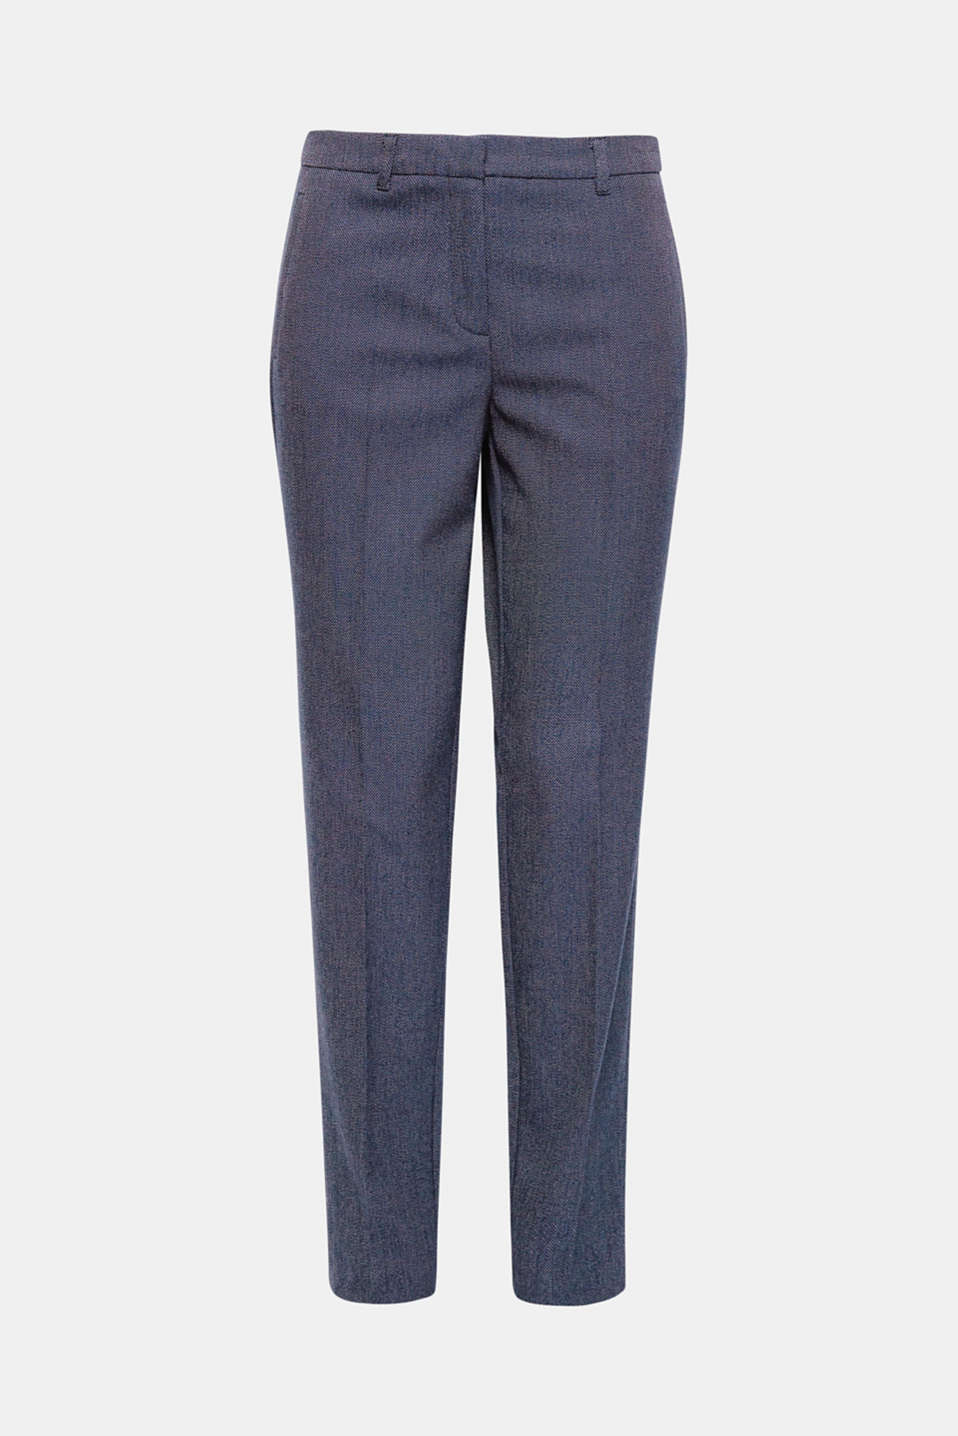 You always look well-dressed in these smart stretch trousers with a fine two-tone texture and pressed pleats!